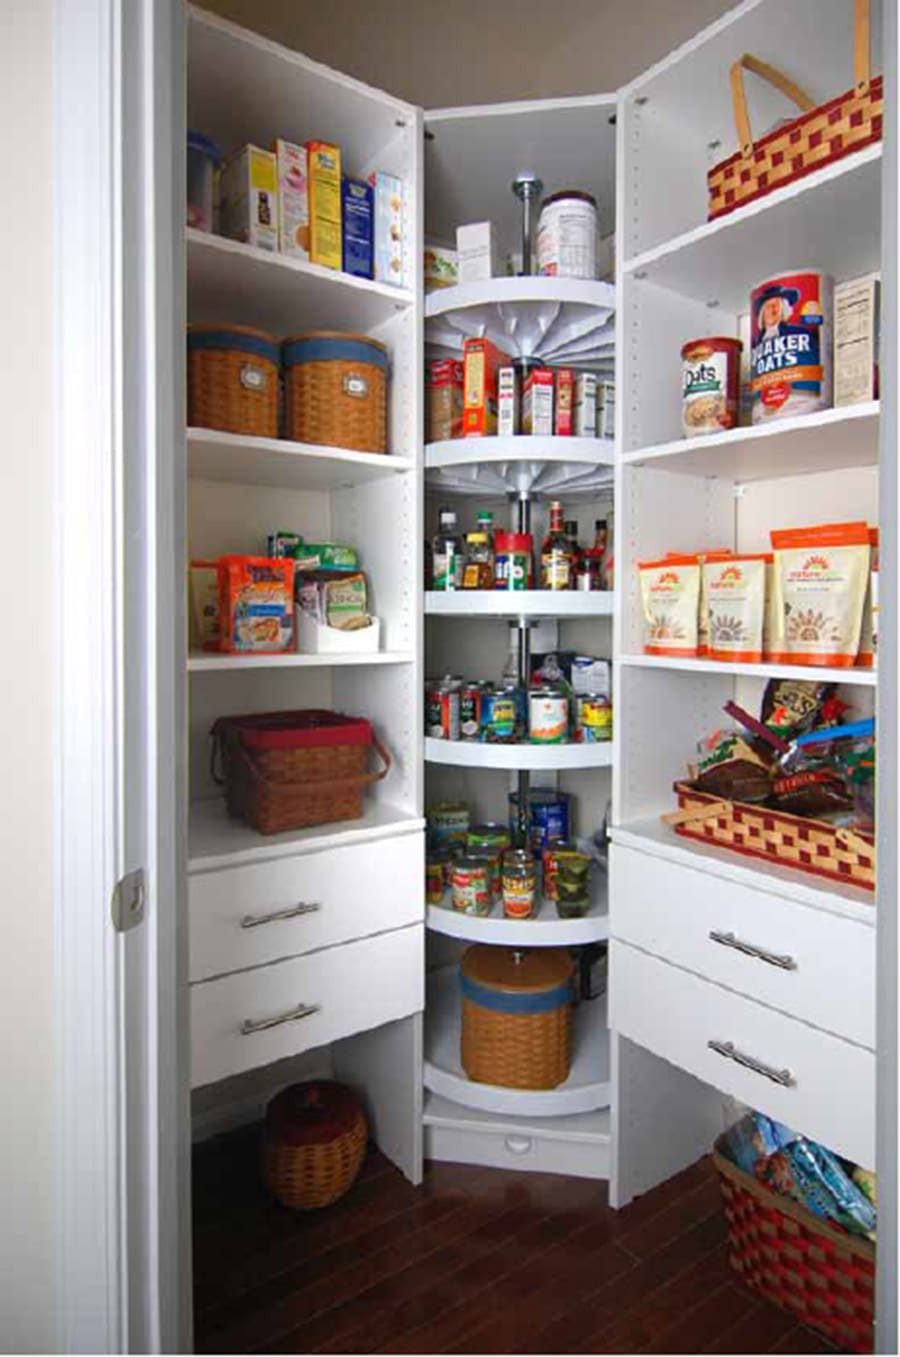 Custom lazy susan in a kitchen pantry credit Closet America.com | Innovate Home Org | #StorageSystems #OrganizationStorage #KitchenPantry #ClosetStorage